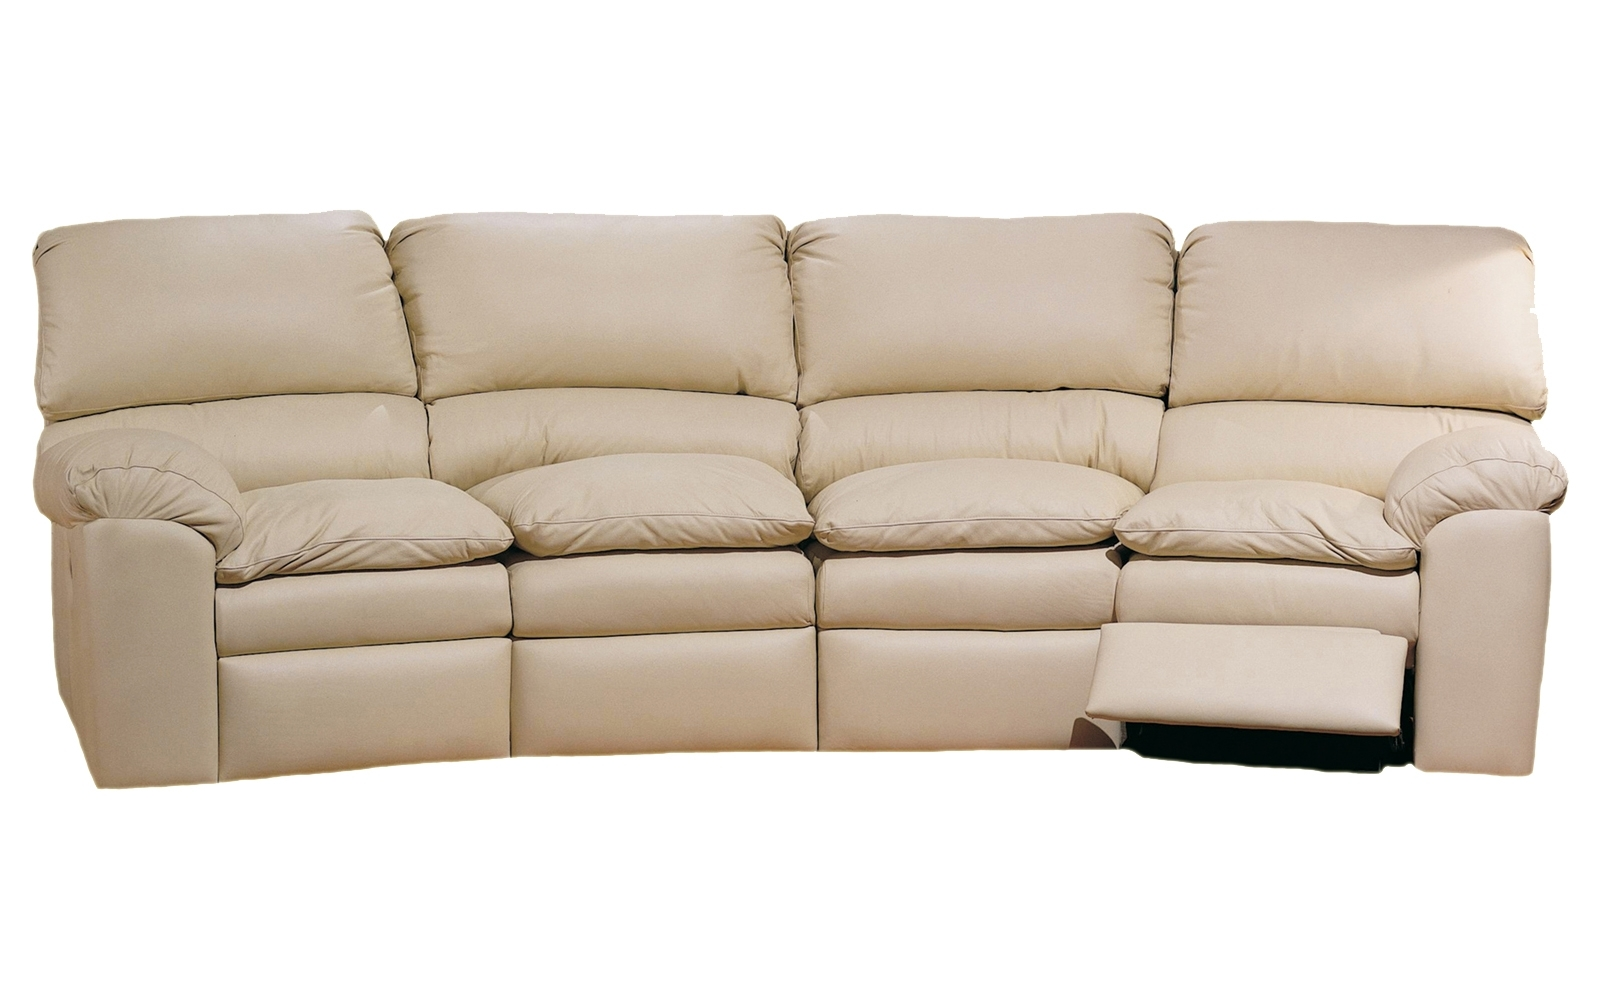 Catera 4 Seat Conversation Sofa – Omnia Leather Inside Fashionable 4 Seat Sofas (View 6 of 20)